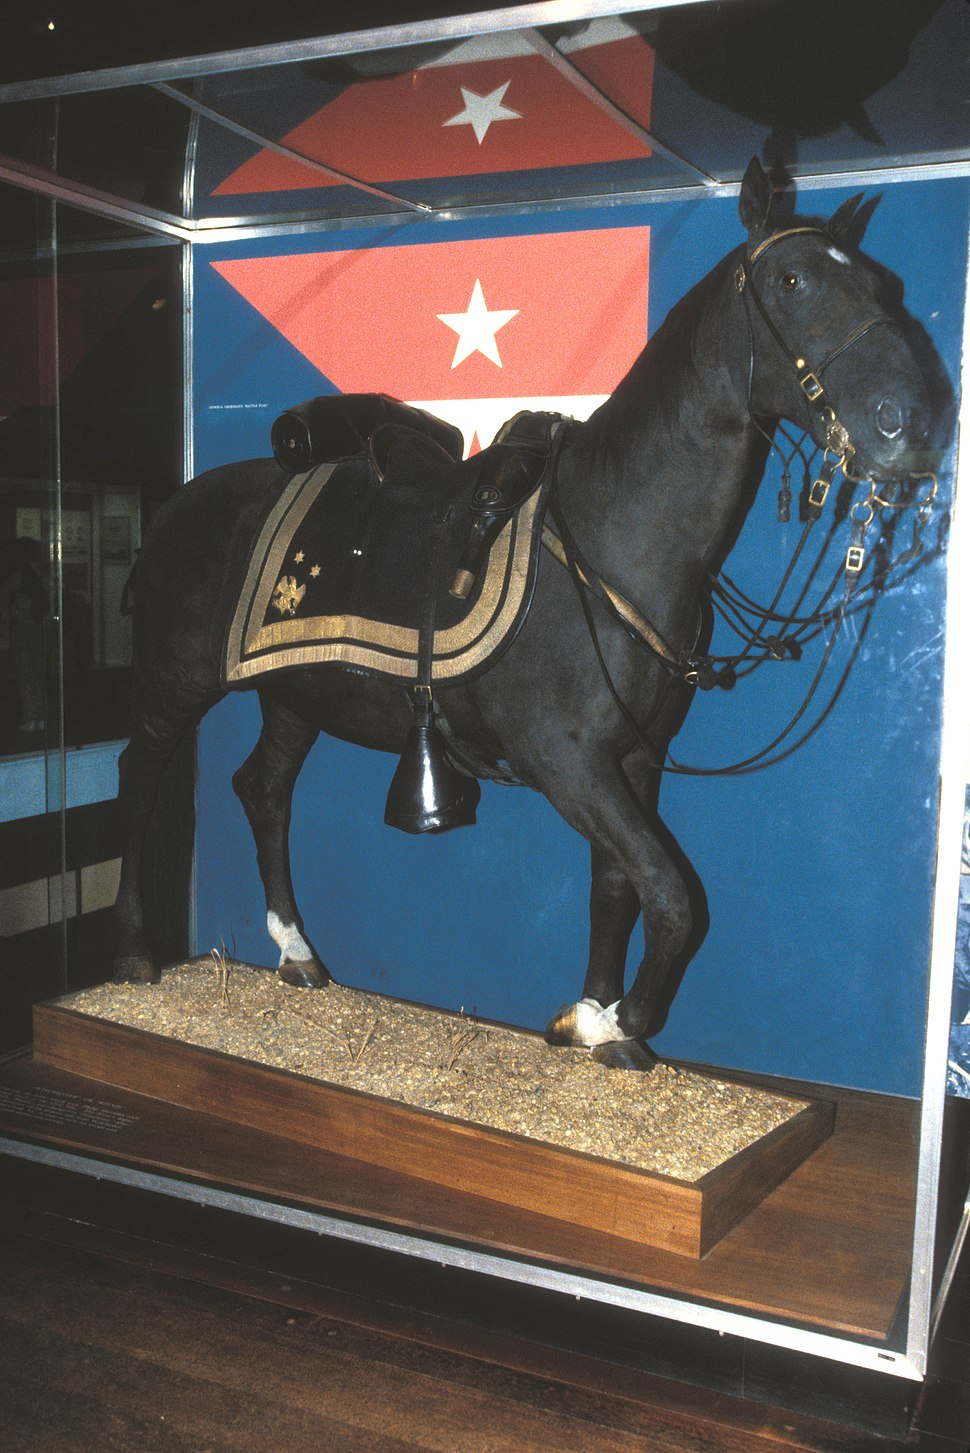 SHERIDAN'S HORSE RIENZI, NATIONAL MUSEUM OF AMERICAN HISTORY, WASHINGTON D.C.